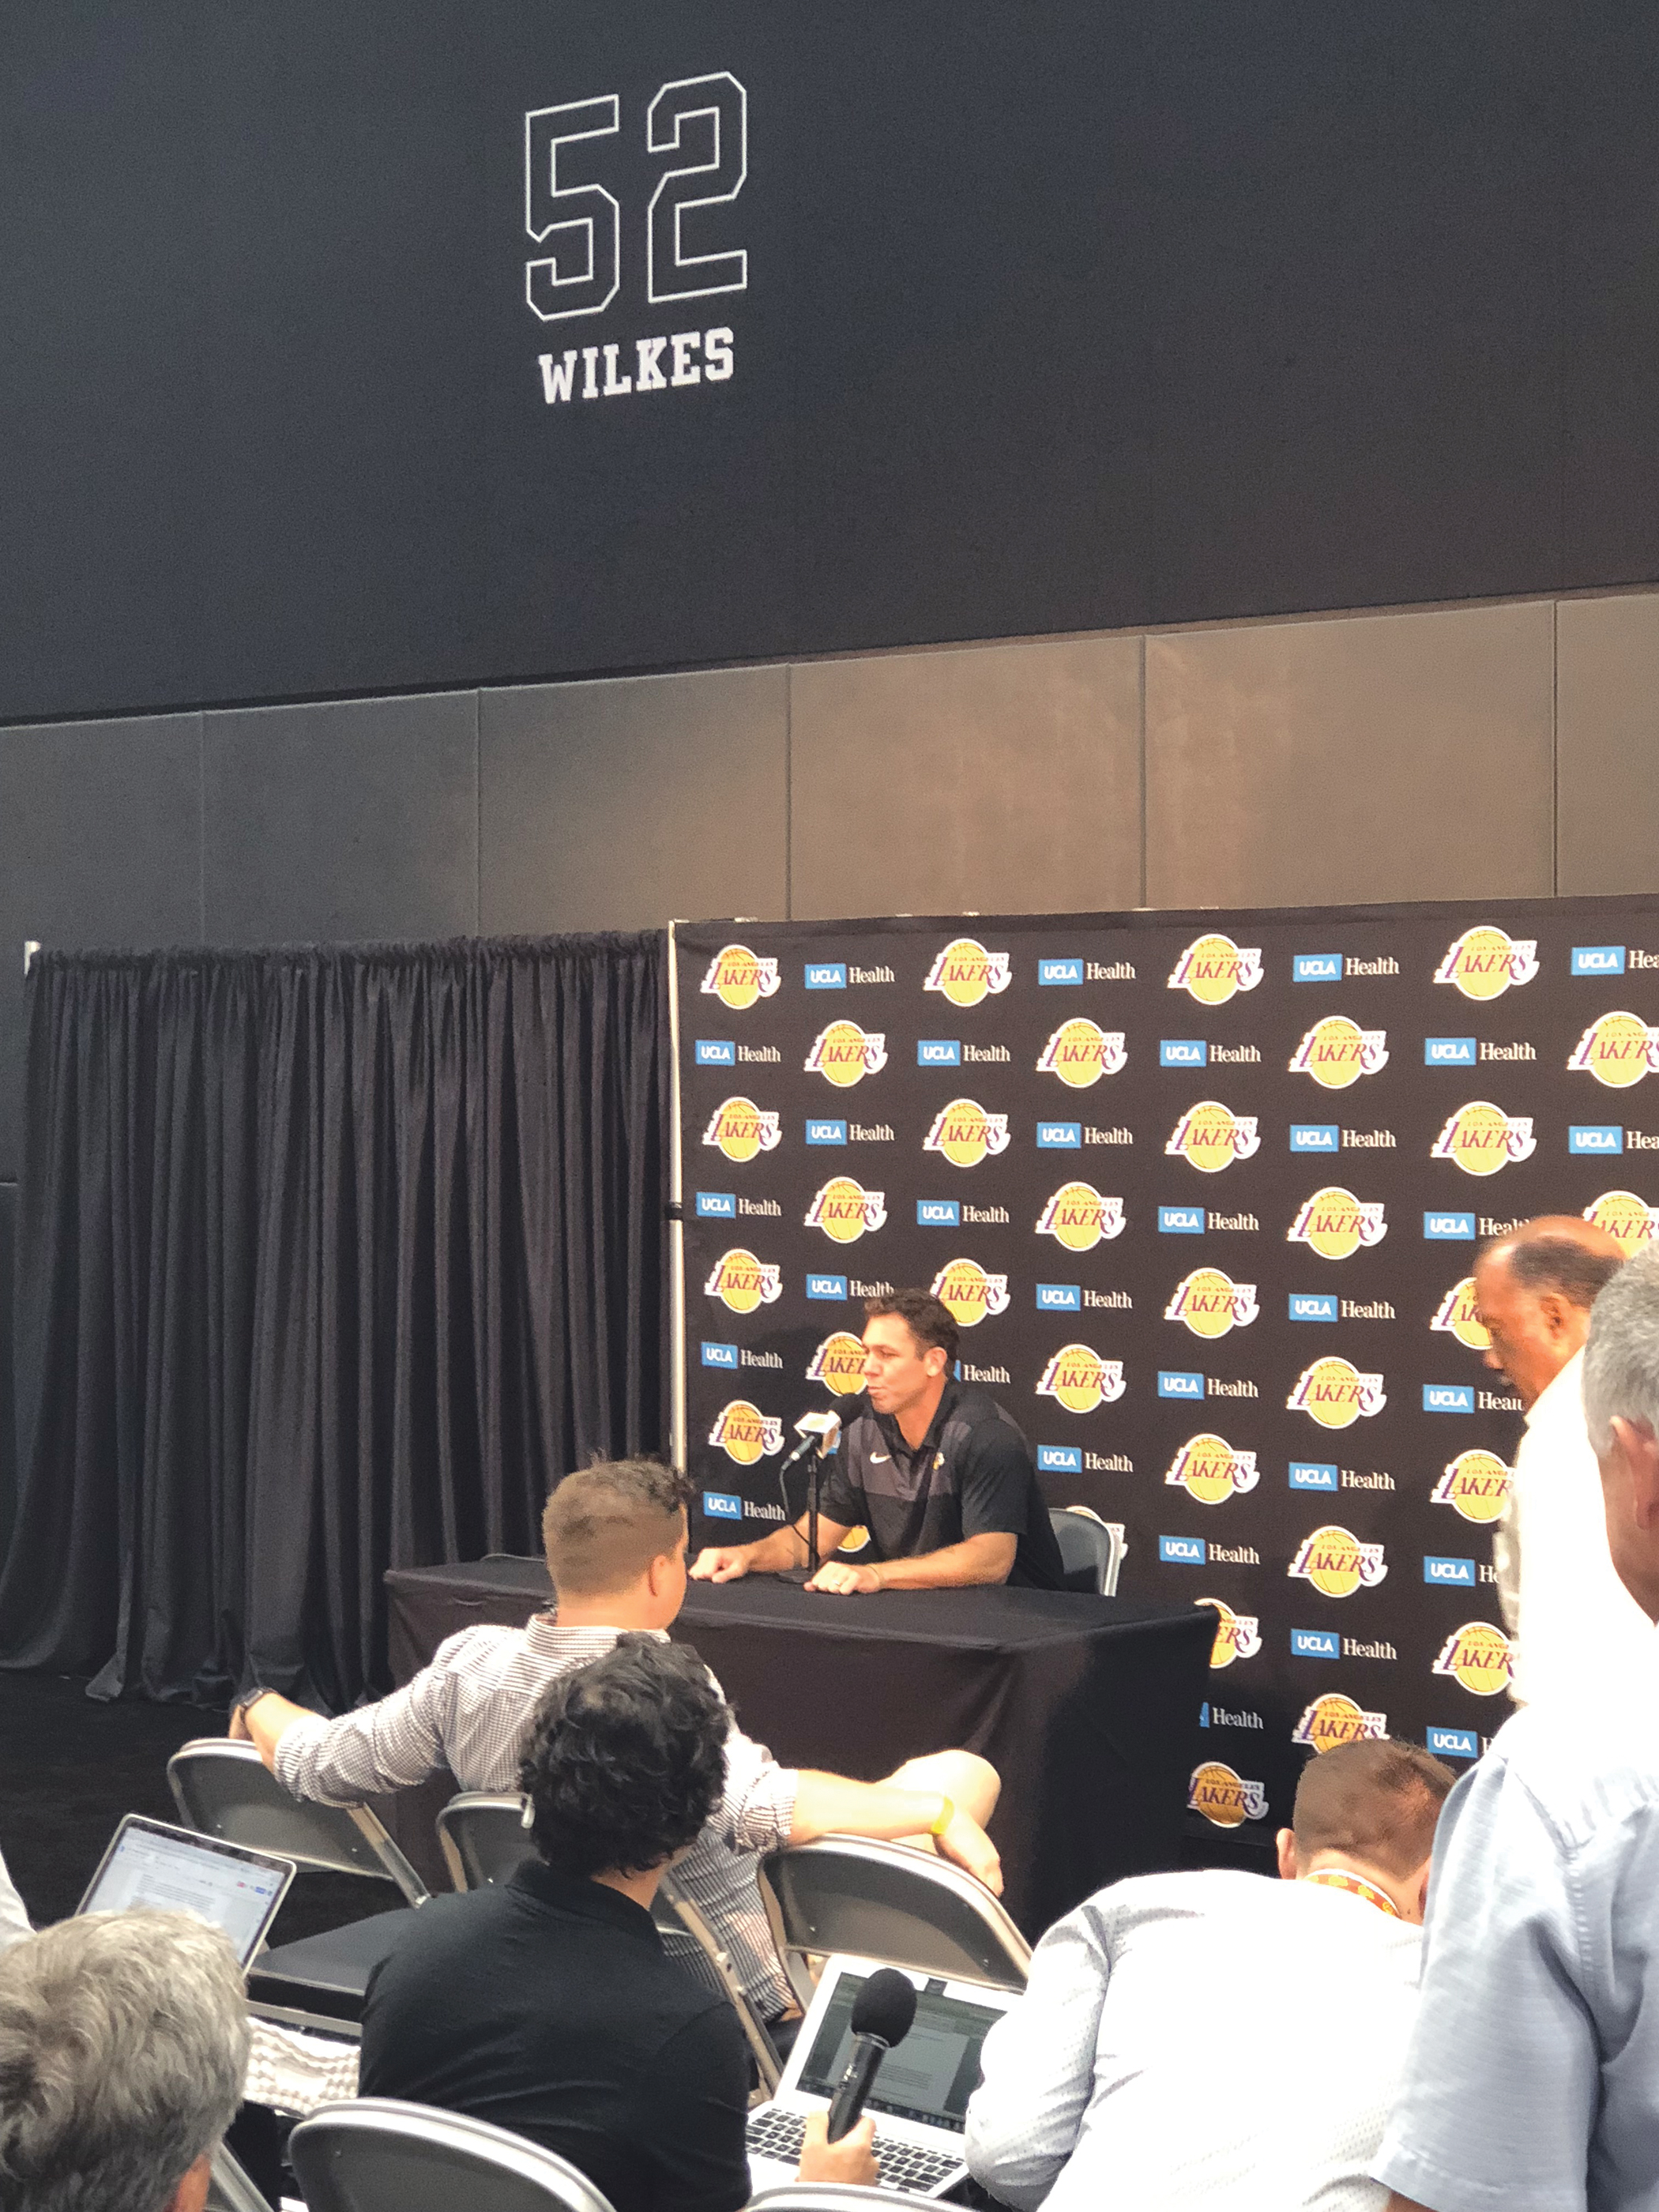 Lakers coach Luke Walton taking questions at Media Day. (Los Angeles News Observer photo)